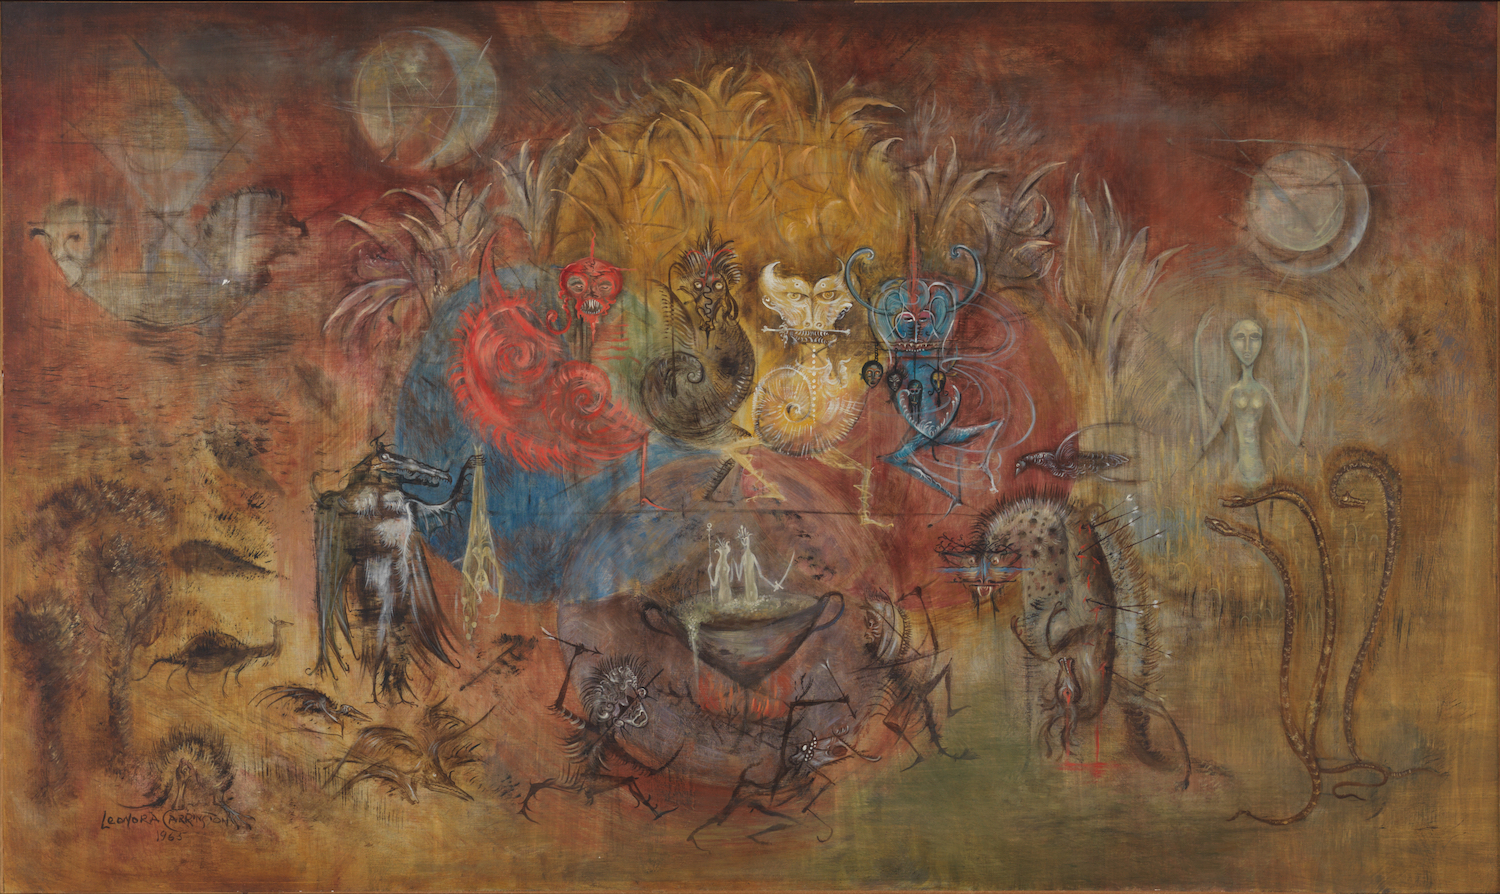 """Leonora Carrington, Untitled [preliminary sketches for the play Opus Siniestrus], 1965. Oil on canvas, 34 3/5 x 58 7/10 inches (88 x 149 cm). Signed and dated l.l. """"Leonora Carrington 1965."""" Image courtesy Gallery Wendi Norris © 2019 Estate of Leonora Carrington / Artists Rights Society (ARS), New York."""